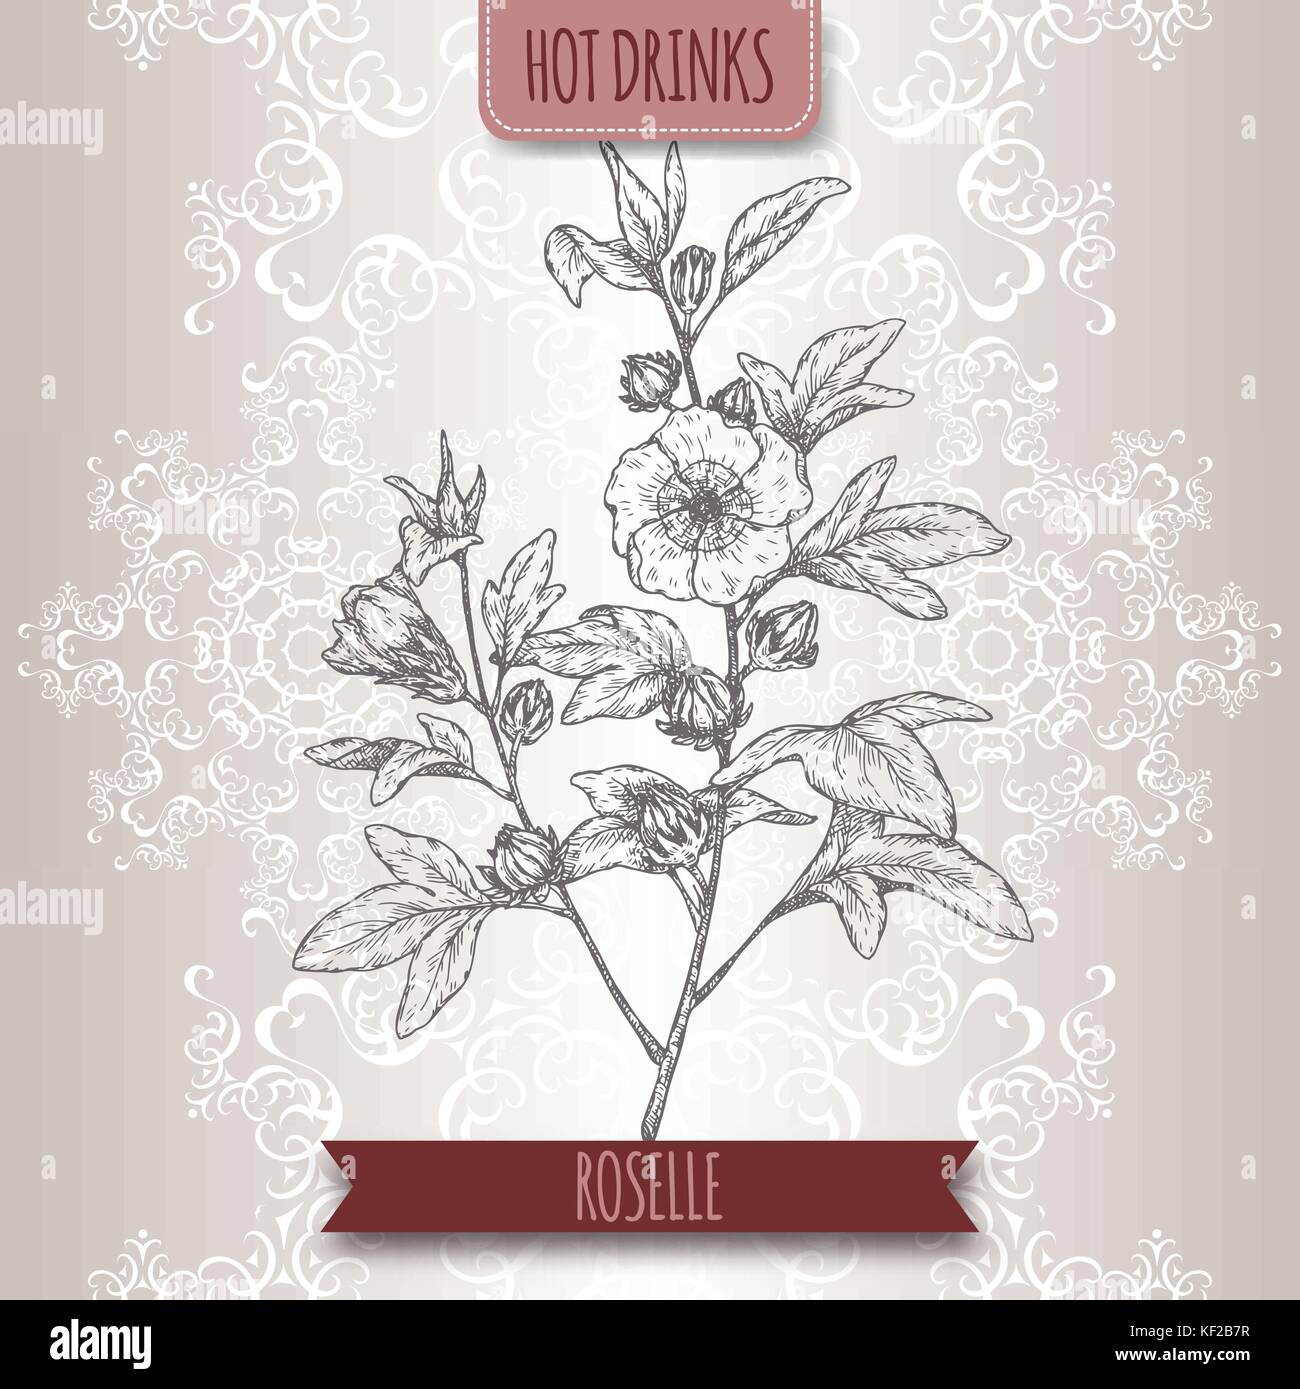 Hibiscus flowers used for tea stock photos hibiscus flowers used roselle aka hibiscus sabdariffa with leaves and flowers used to make carcade tea izmirmasajfo